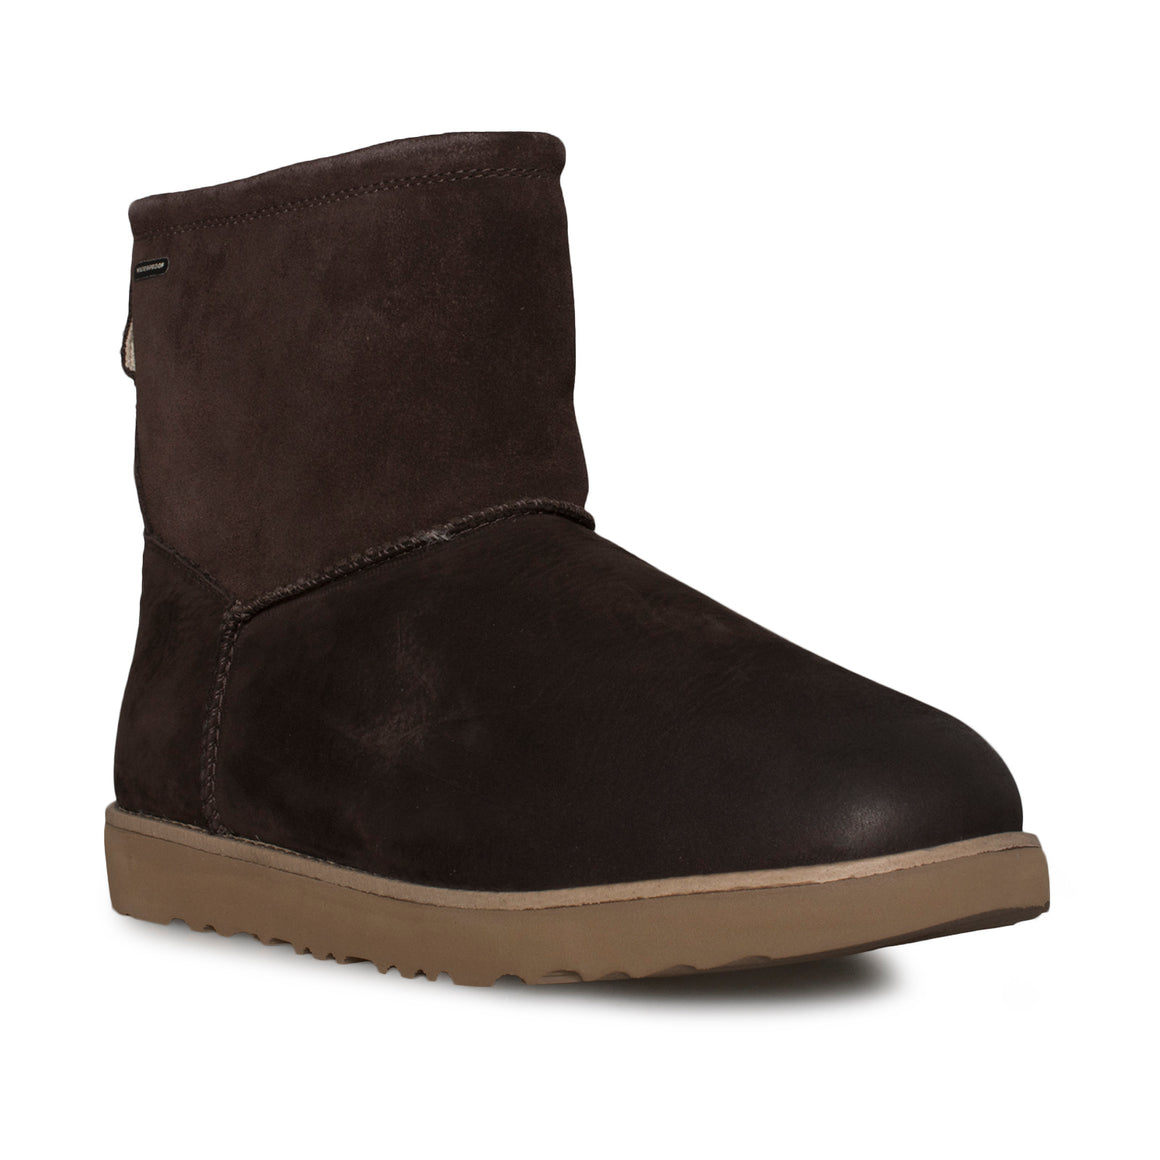 UGG Classic Toggle Waterproof Stout Boots - Men's